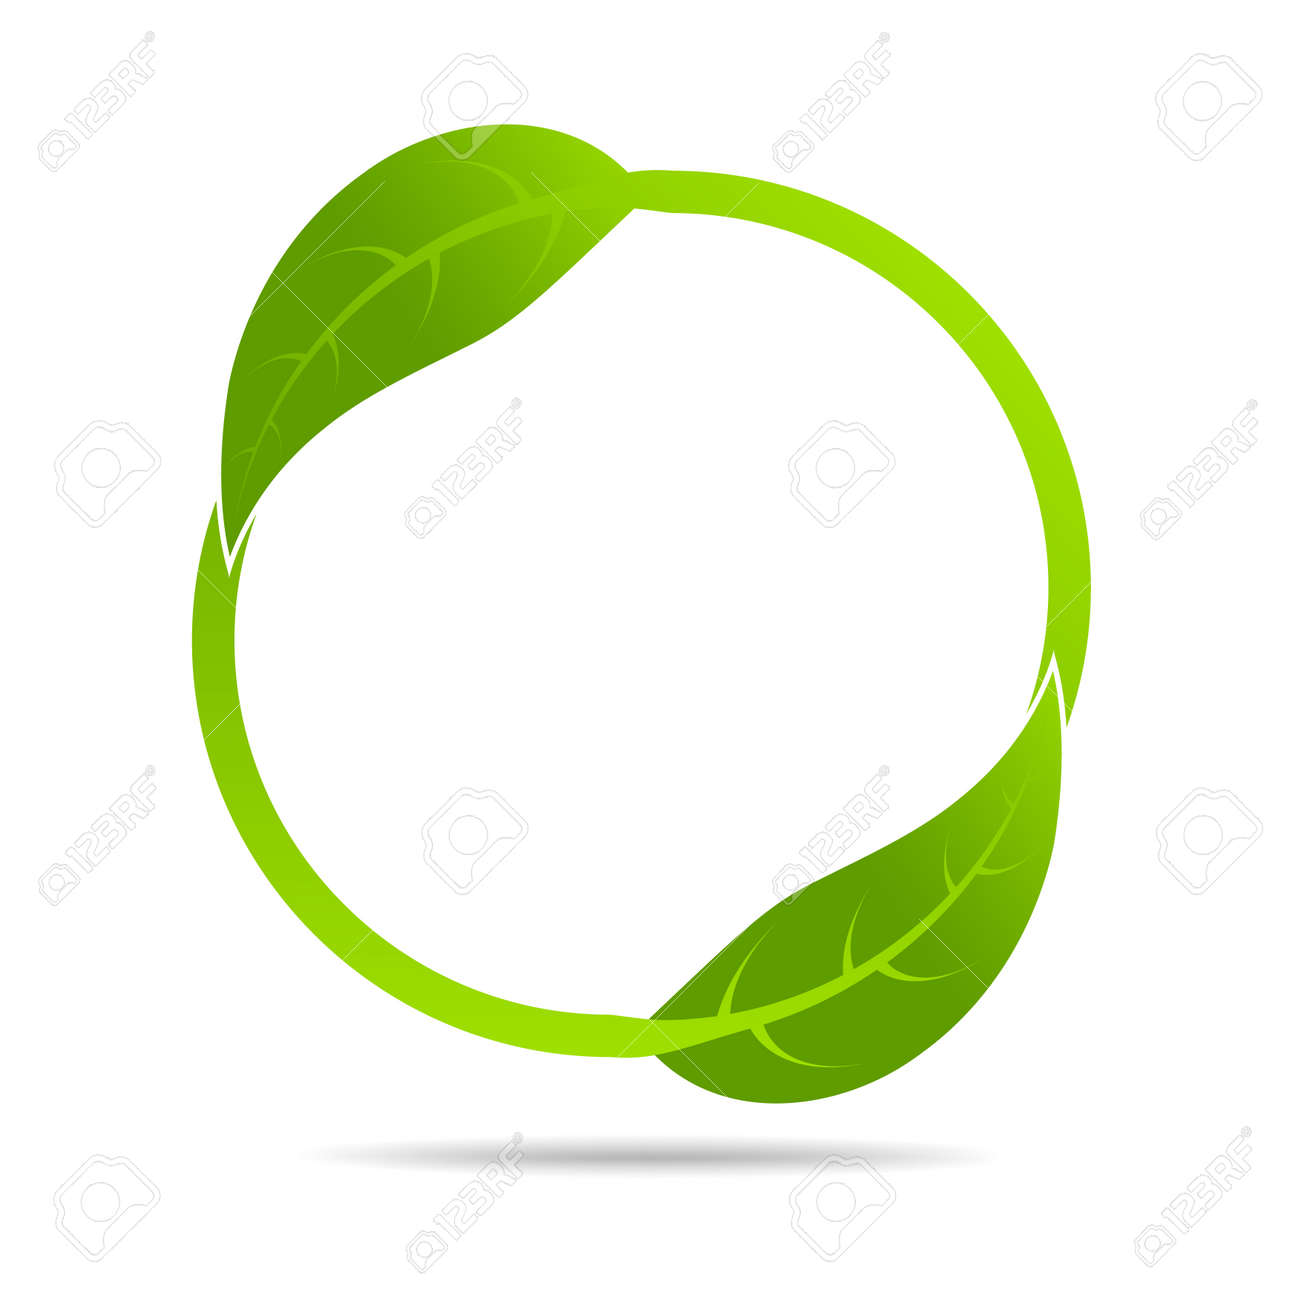 Ecology concept and Environmental, Banner design elements for sustainable energy development, Vector illustration - 149235743